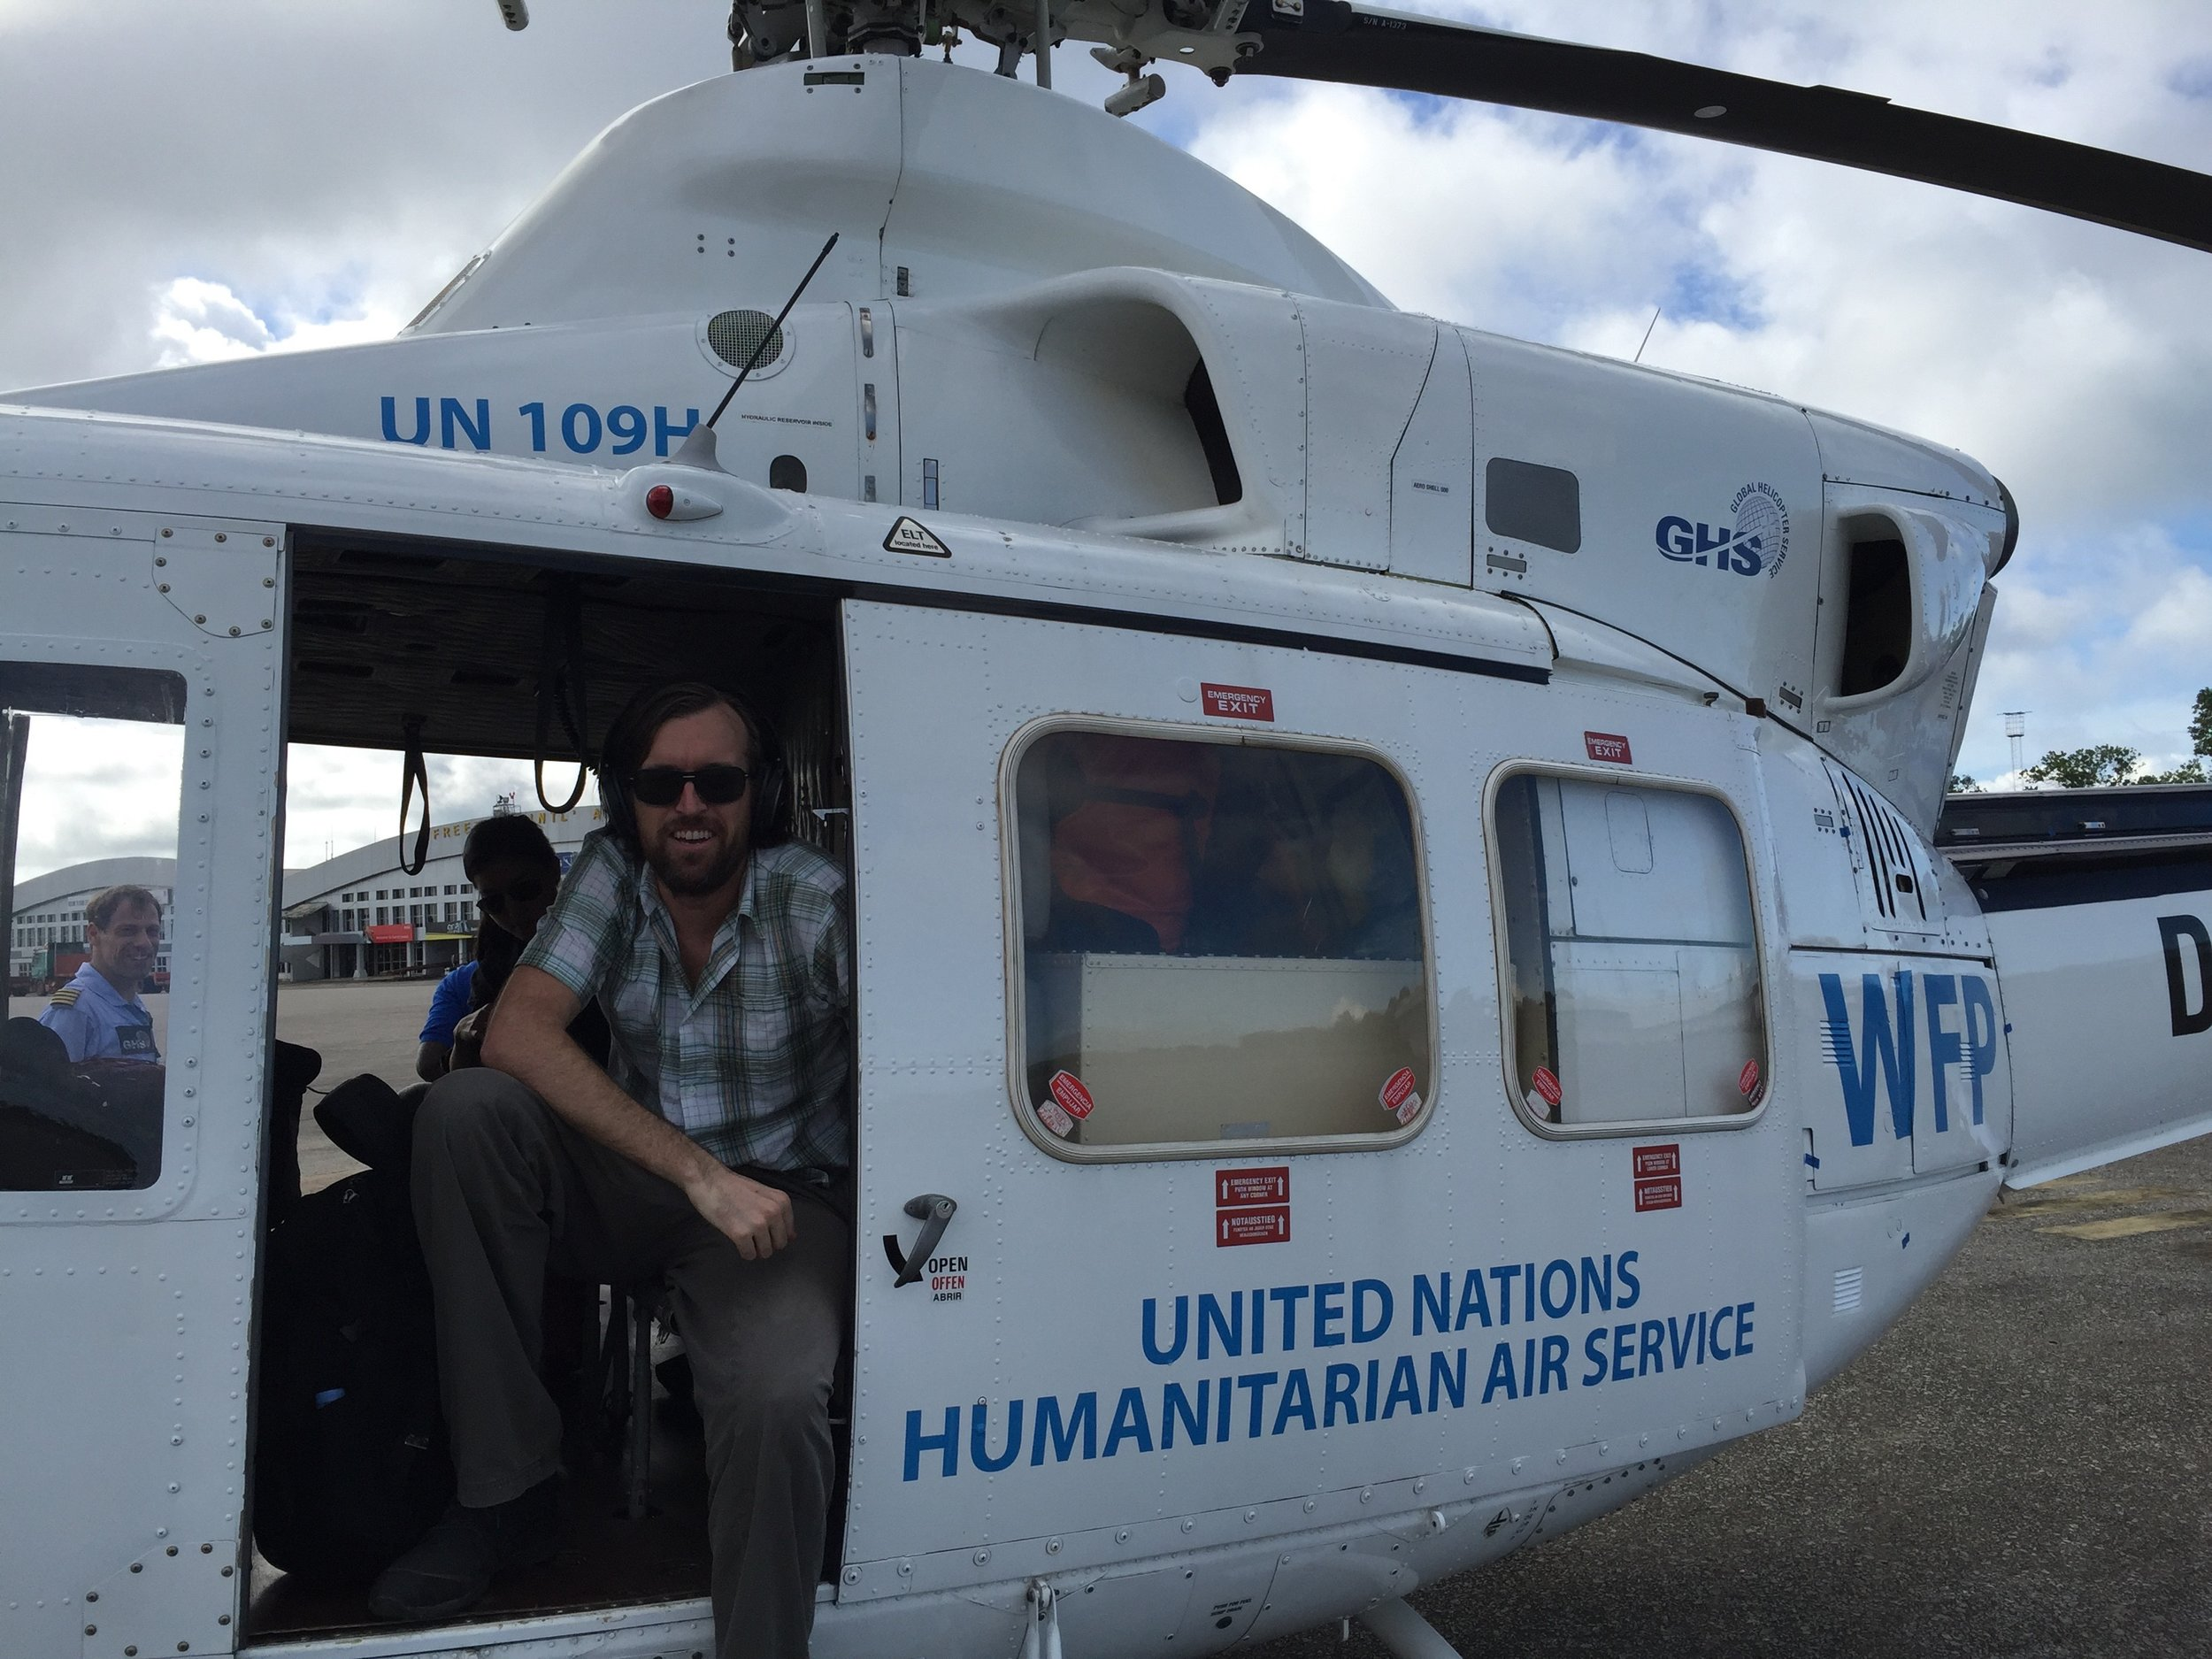 Gene Richardson in a UN helicopter while on his service trip.